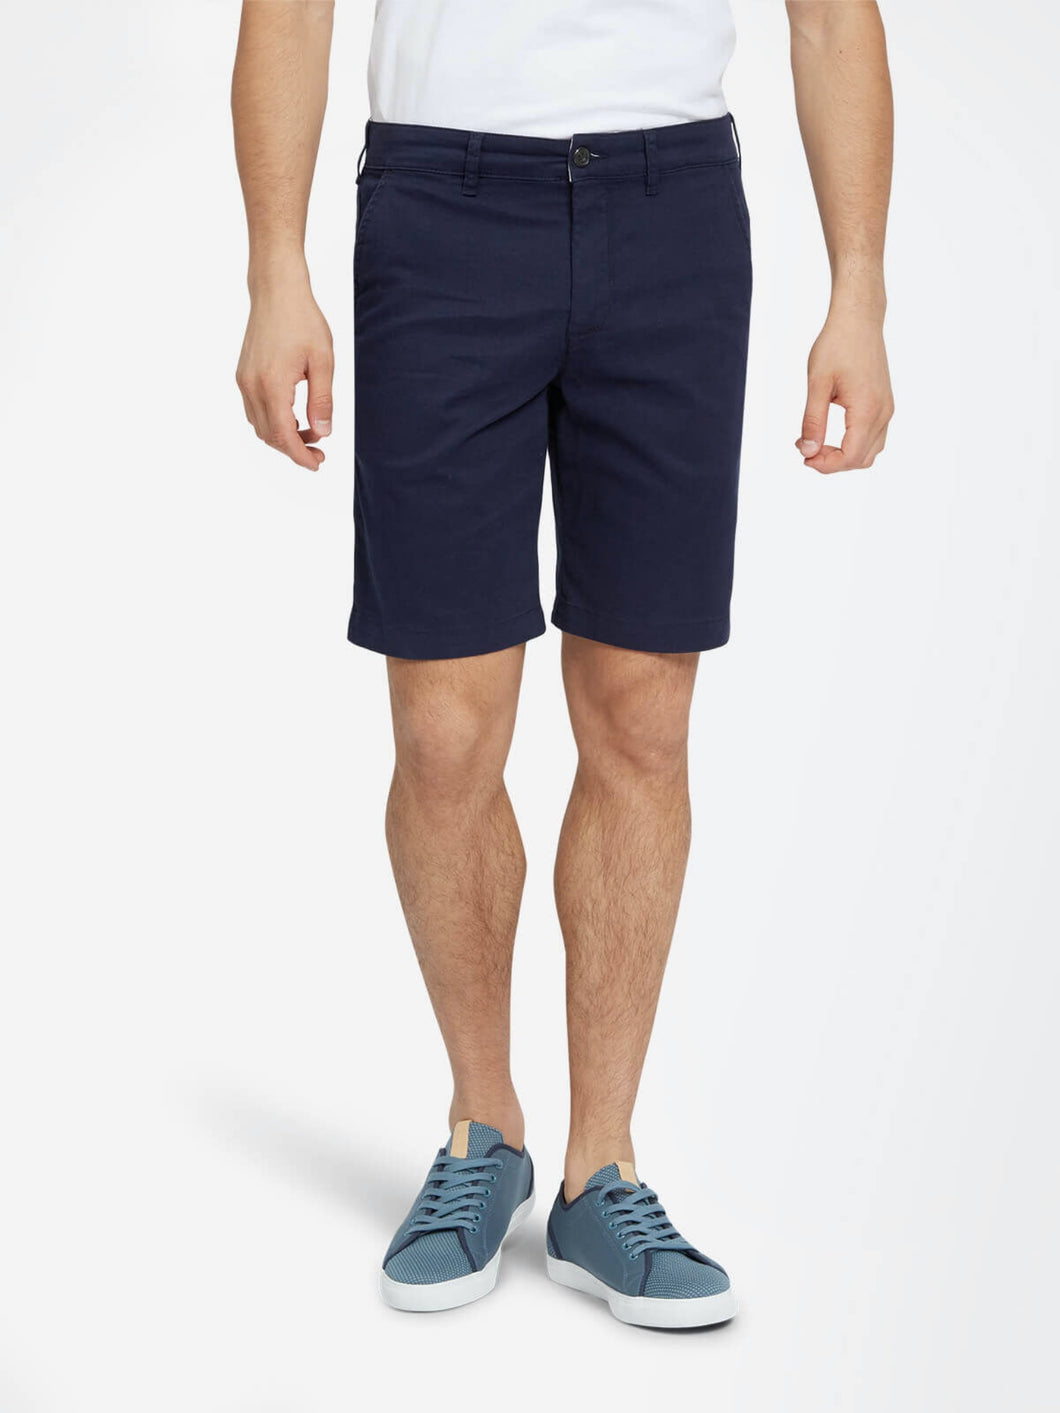 Chino Short - Navy / 28 - SHORTS HERR, L, LYLE & SCOTT, M,